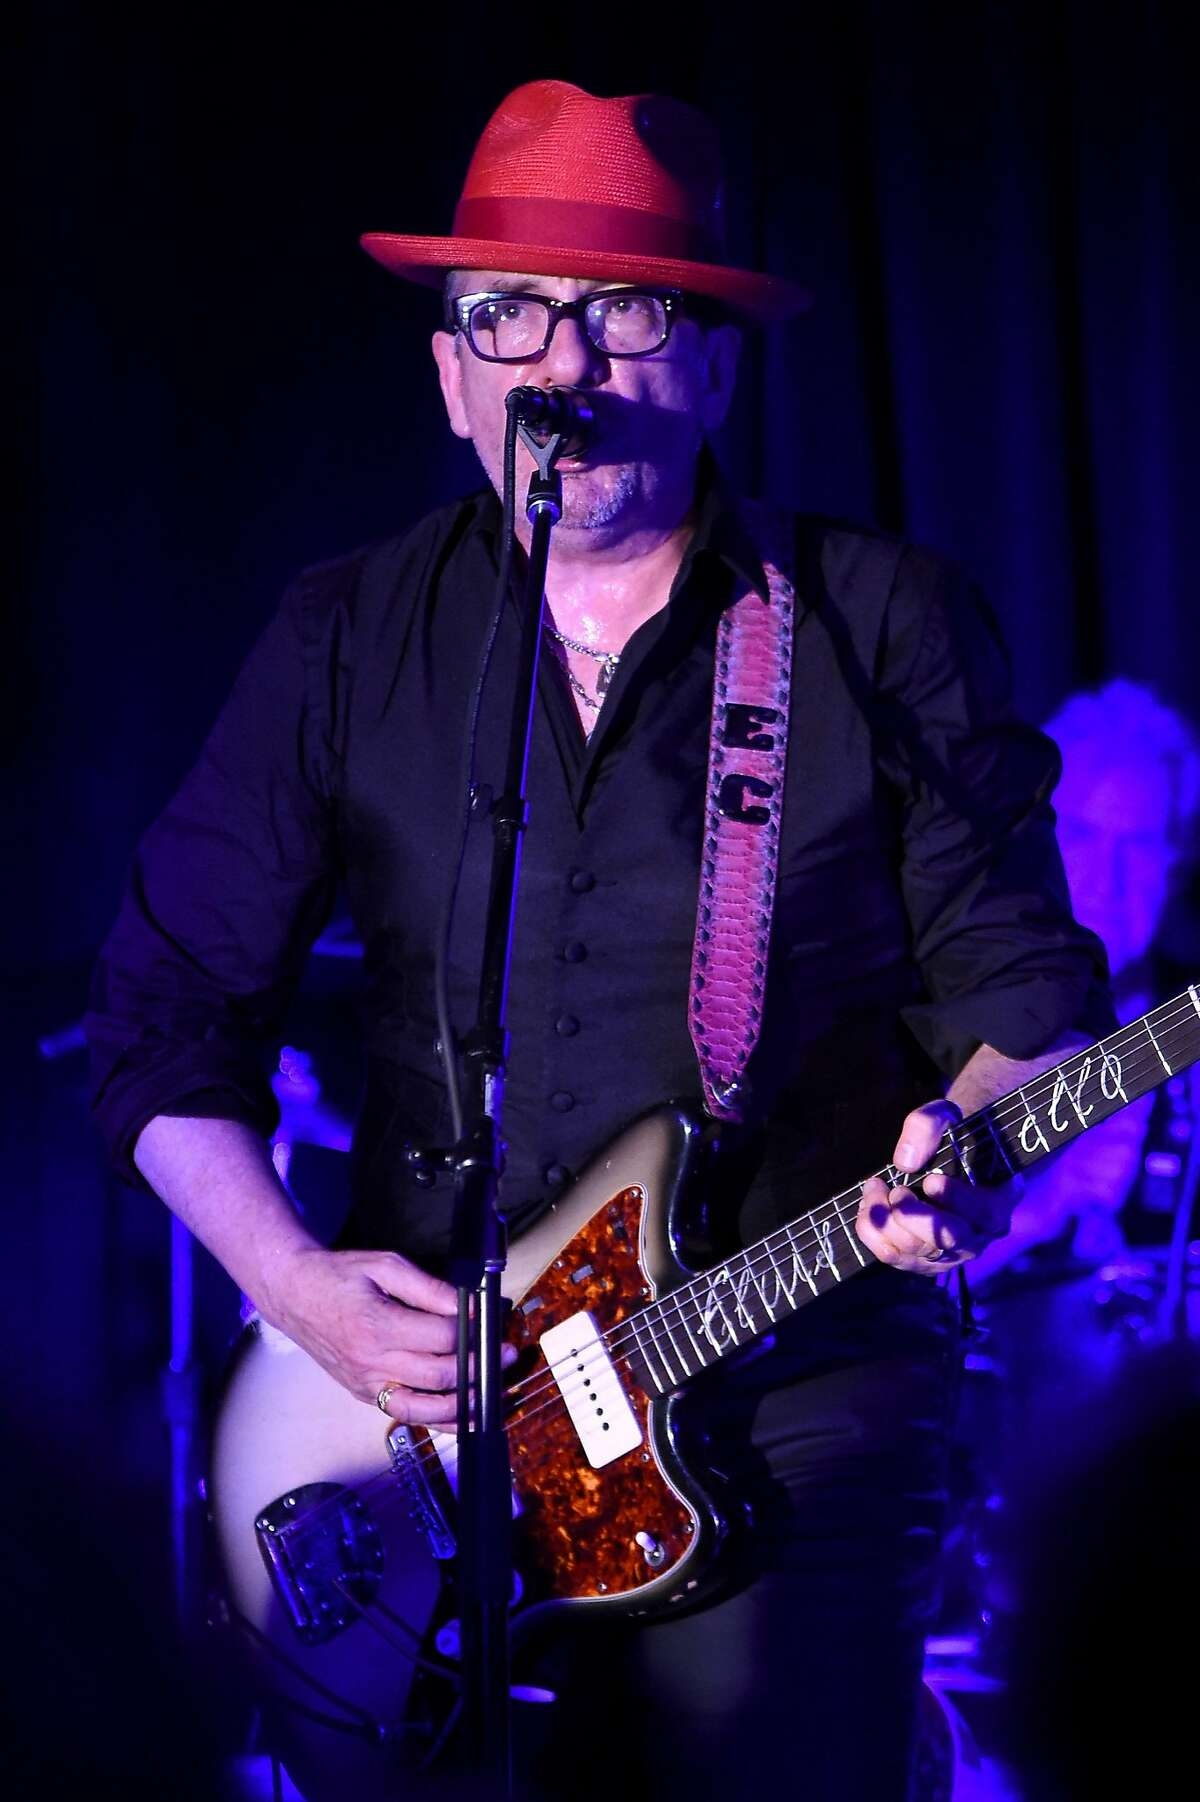 WASHINGTON, DC - APRIL 29: Elvis Costello performs at Full Frontal With Samantha Bee's Not The White House Correspondents' Dinner After Party at the W Hotel POV Rooftop on April 29, 2017 in Washington, DC. (Photo by Dimitrios Kambouris/Getty Images for TBS)